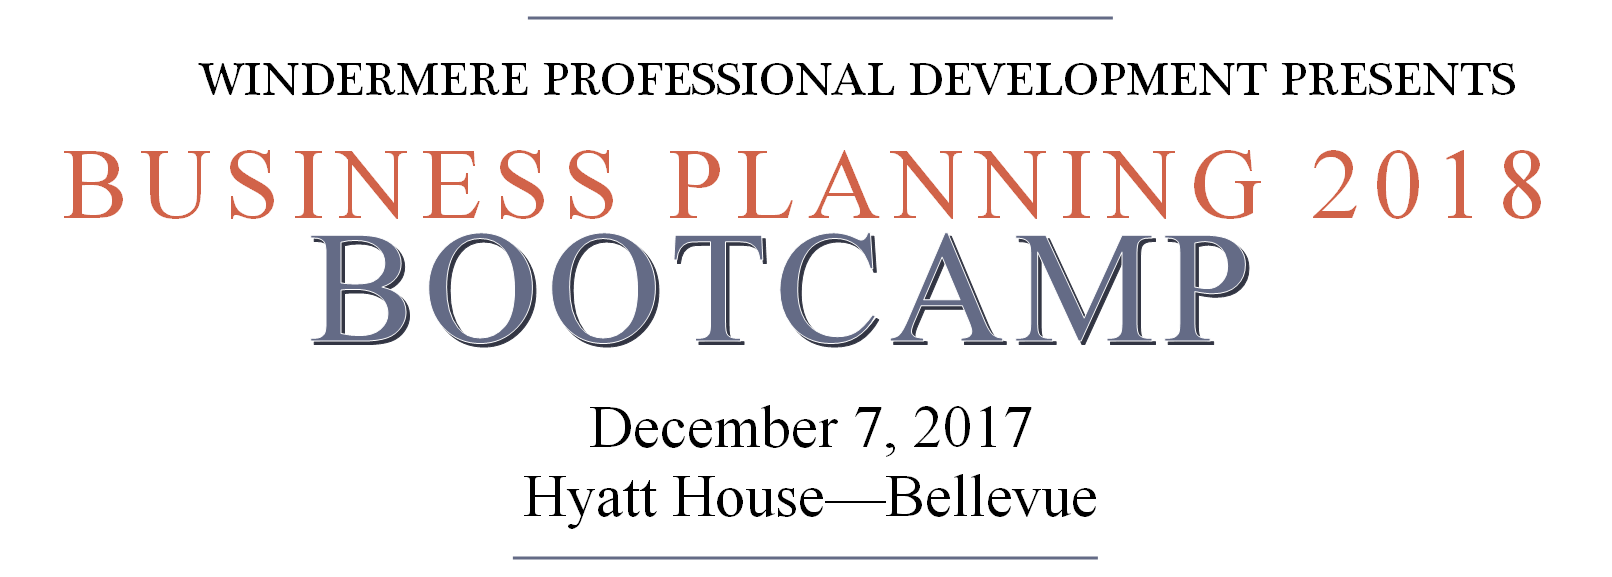 bootcamp December 7th